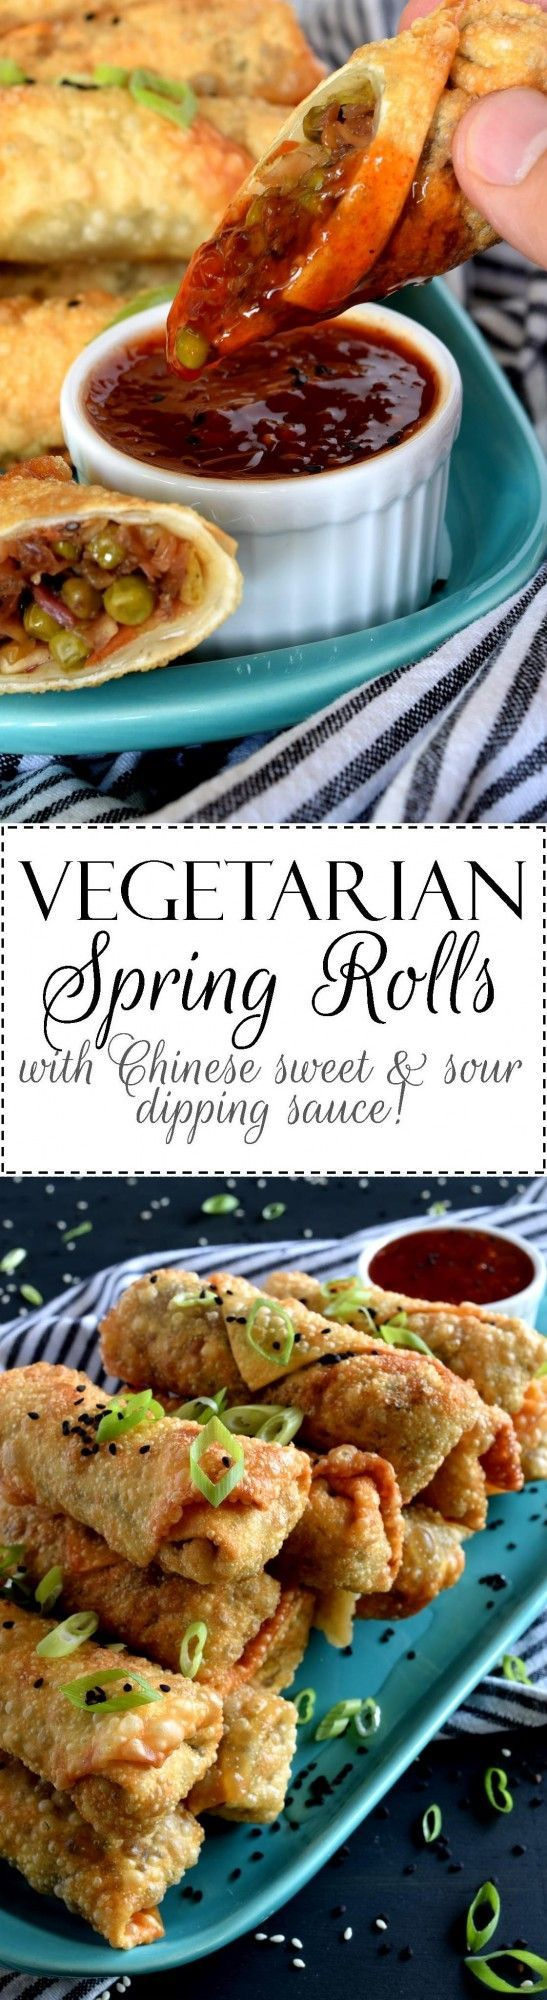 Vegetarian Spring Rolls are delicious and super easy to make.  Using store-bought coleslaw mix speeds up the prep time and gets these appetizers to the table in 25 minutes!  And, don't forget that sweet and sour dipping sauce with a mild kick from the chilies!